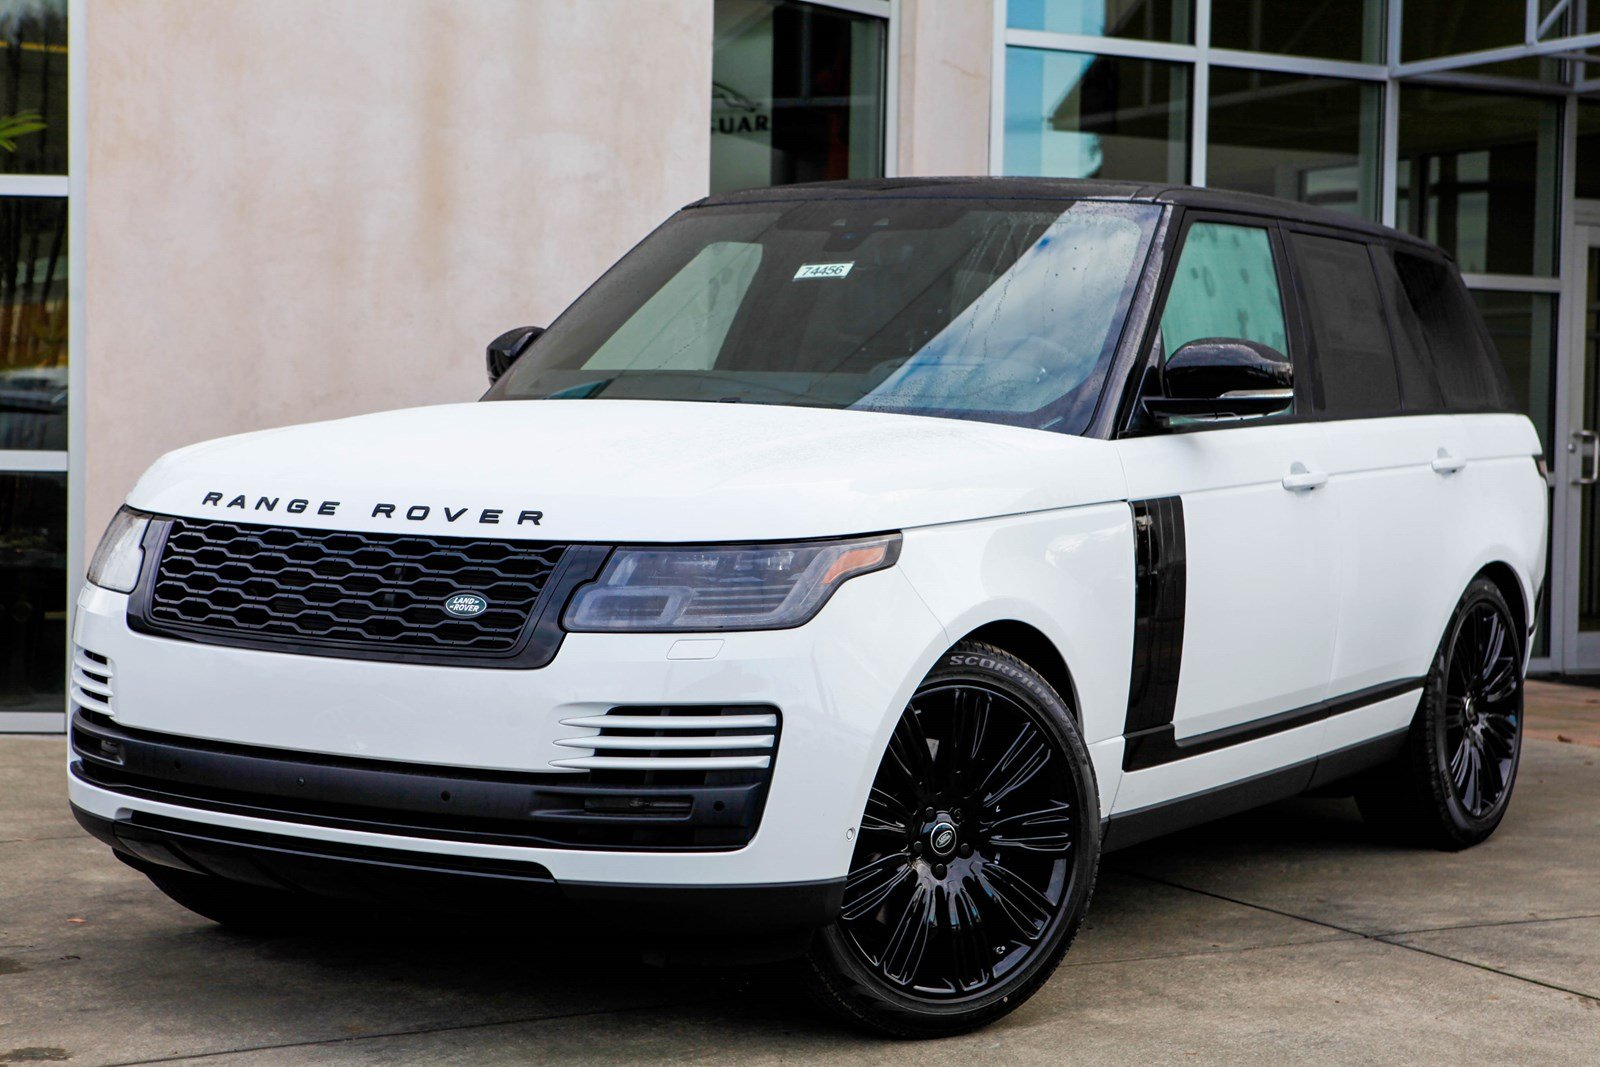 Range Rover Seattle >> Range Rover Seattle Wallpapers 1080p